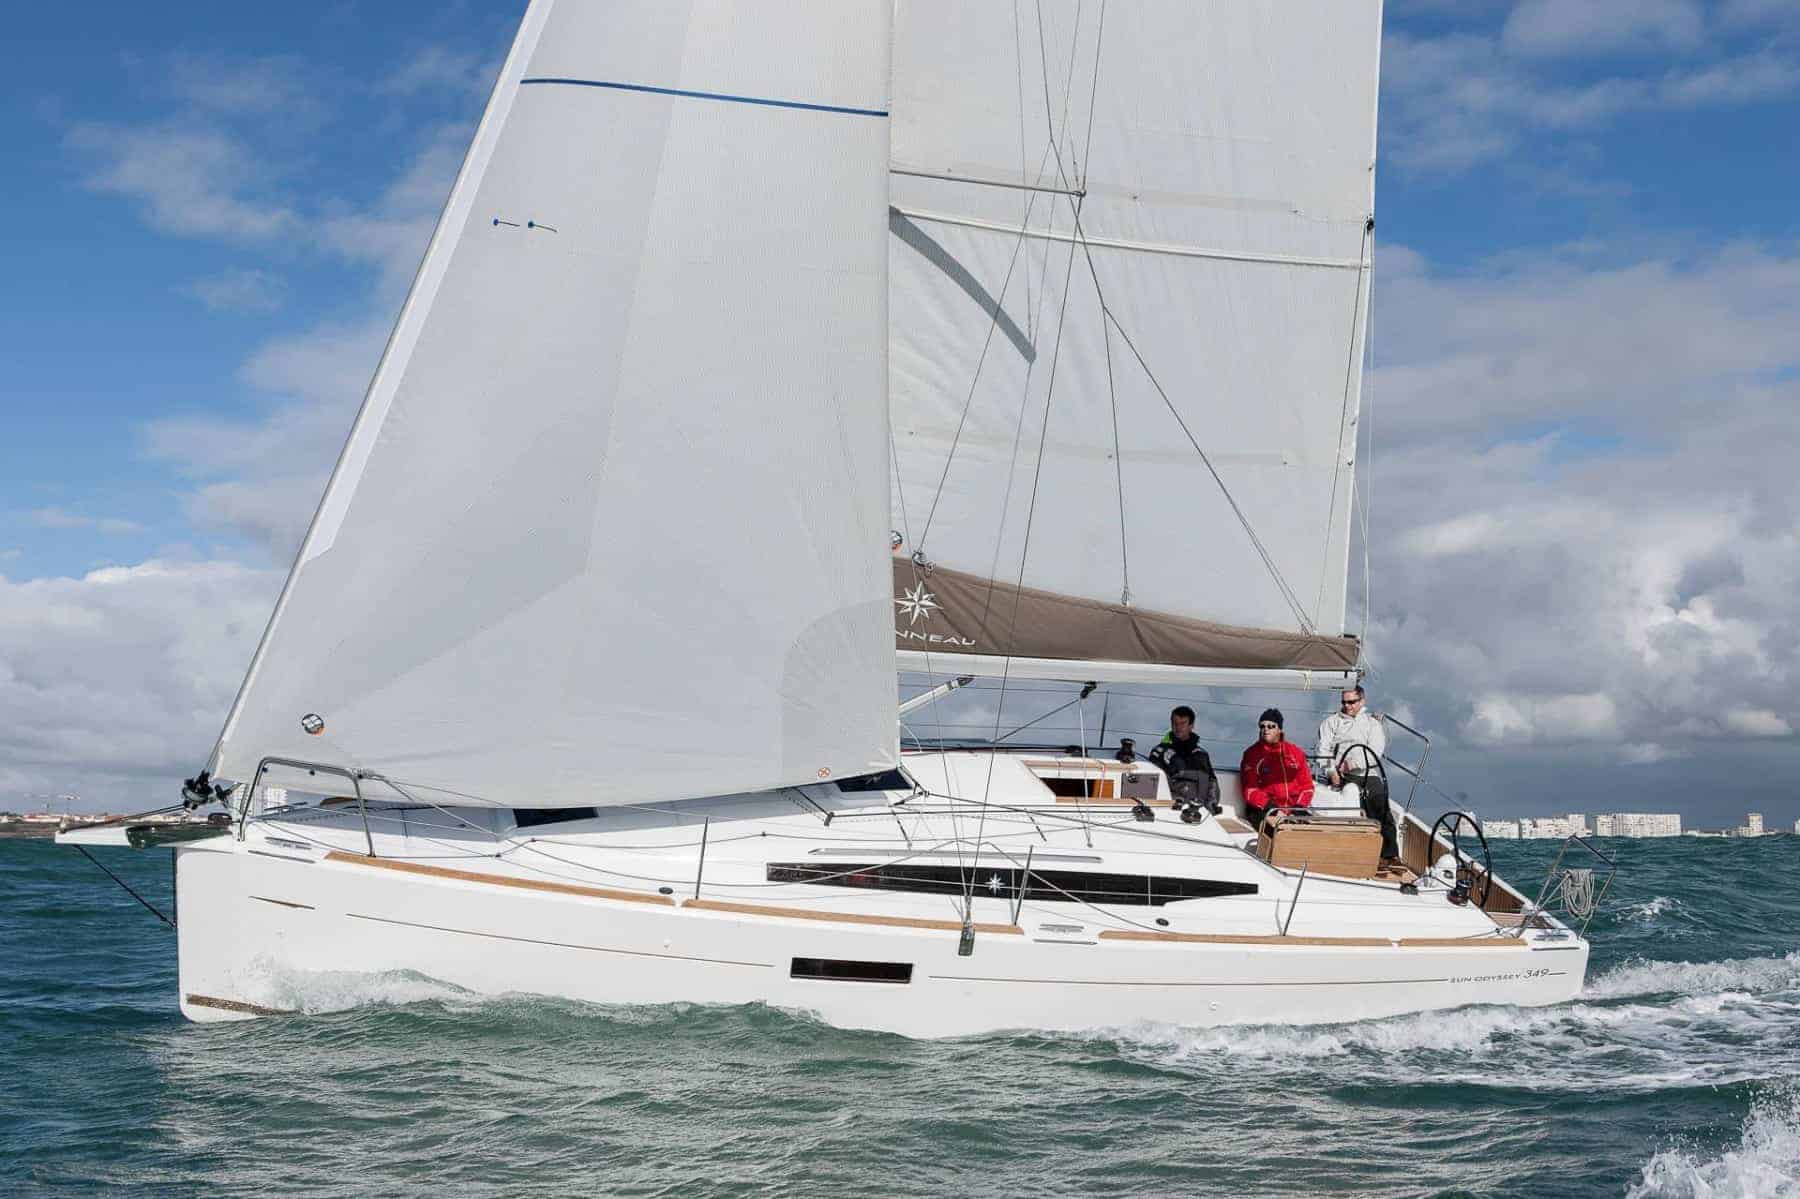 Jeanneau Sun Odyssey 349 in profile sailing with wind in its sail